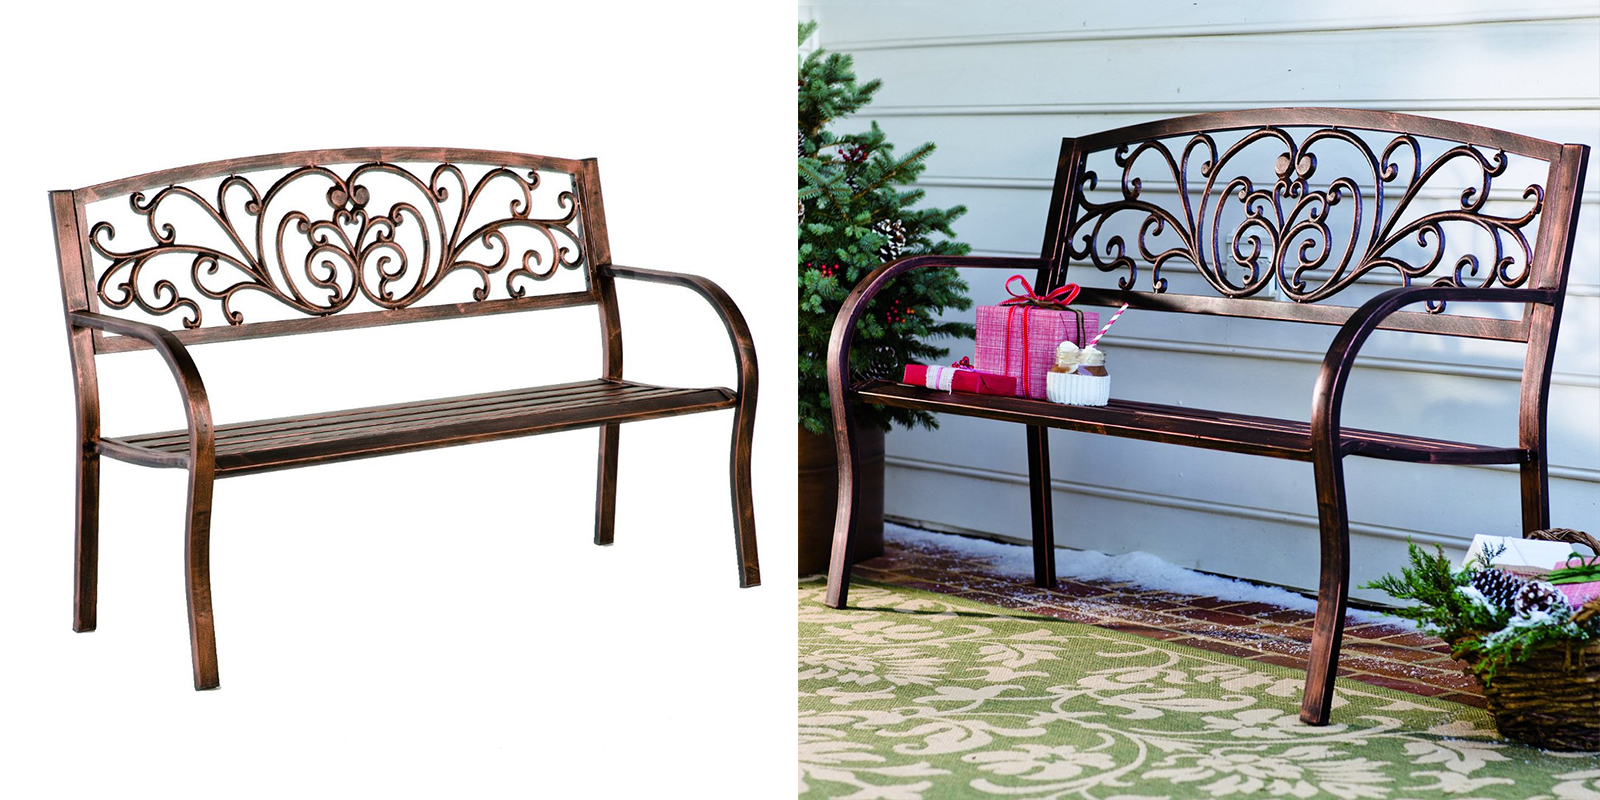 Patio Chair - Bronze Finish Blooming Garden Bench